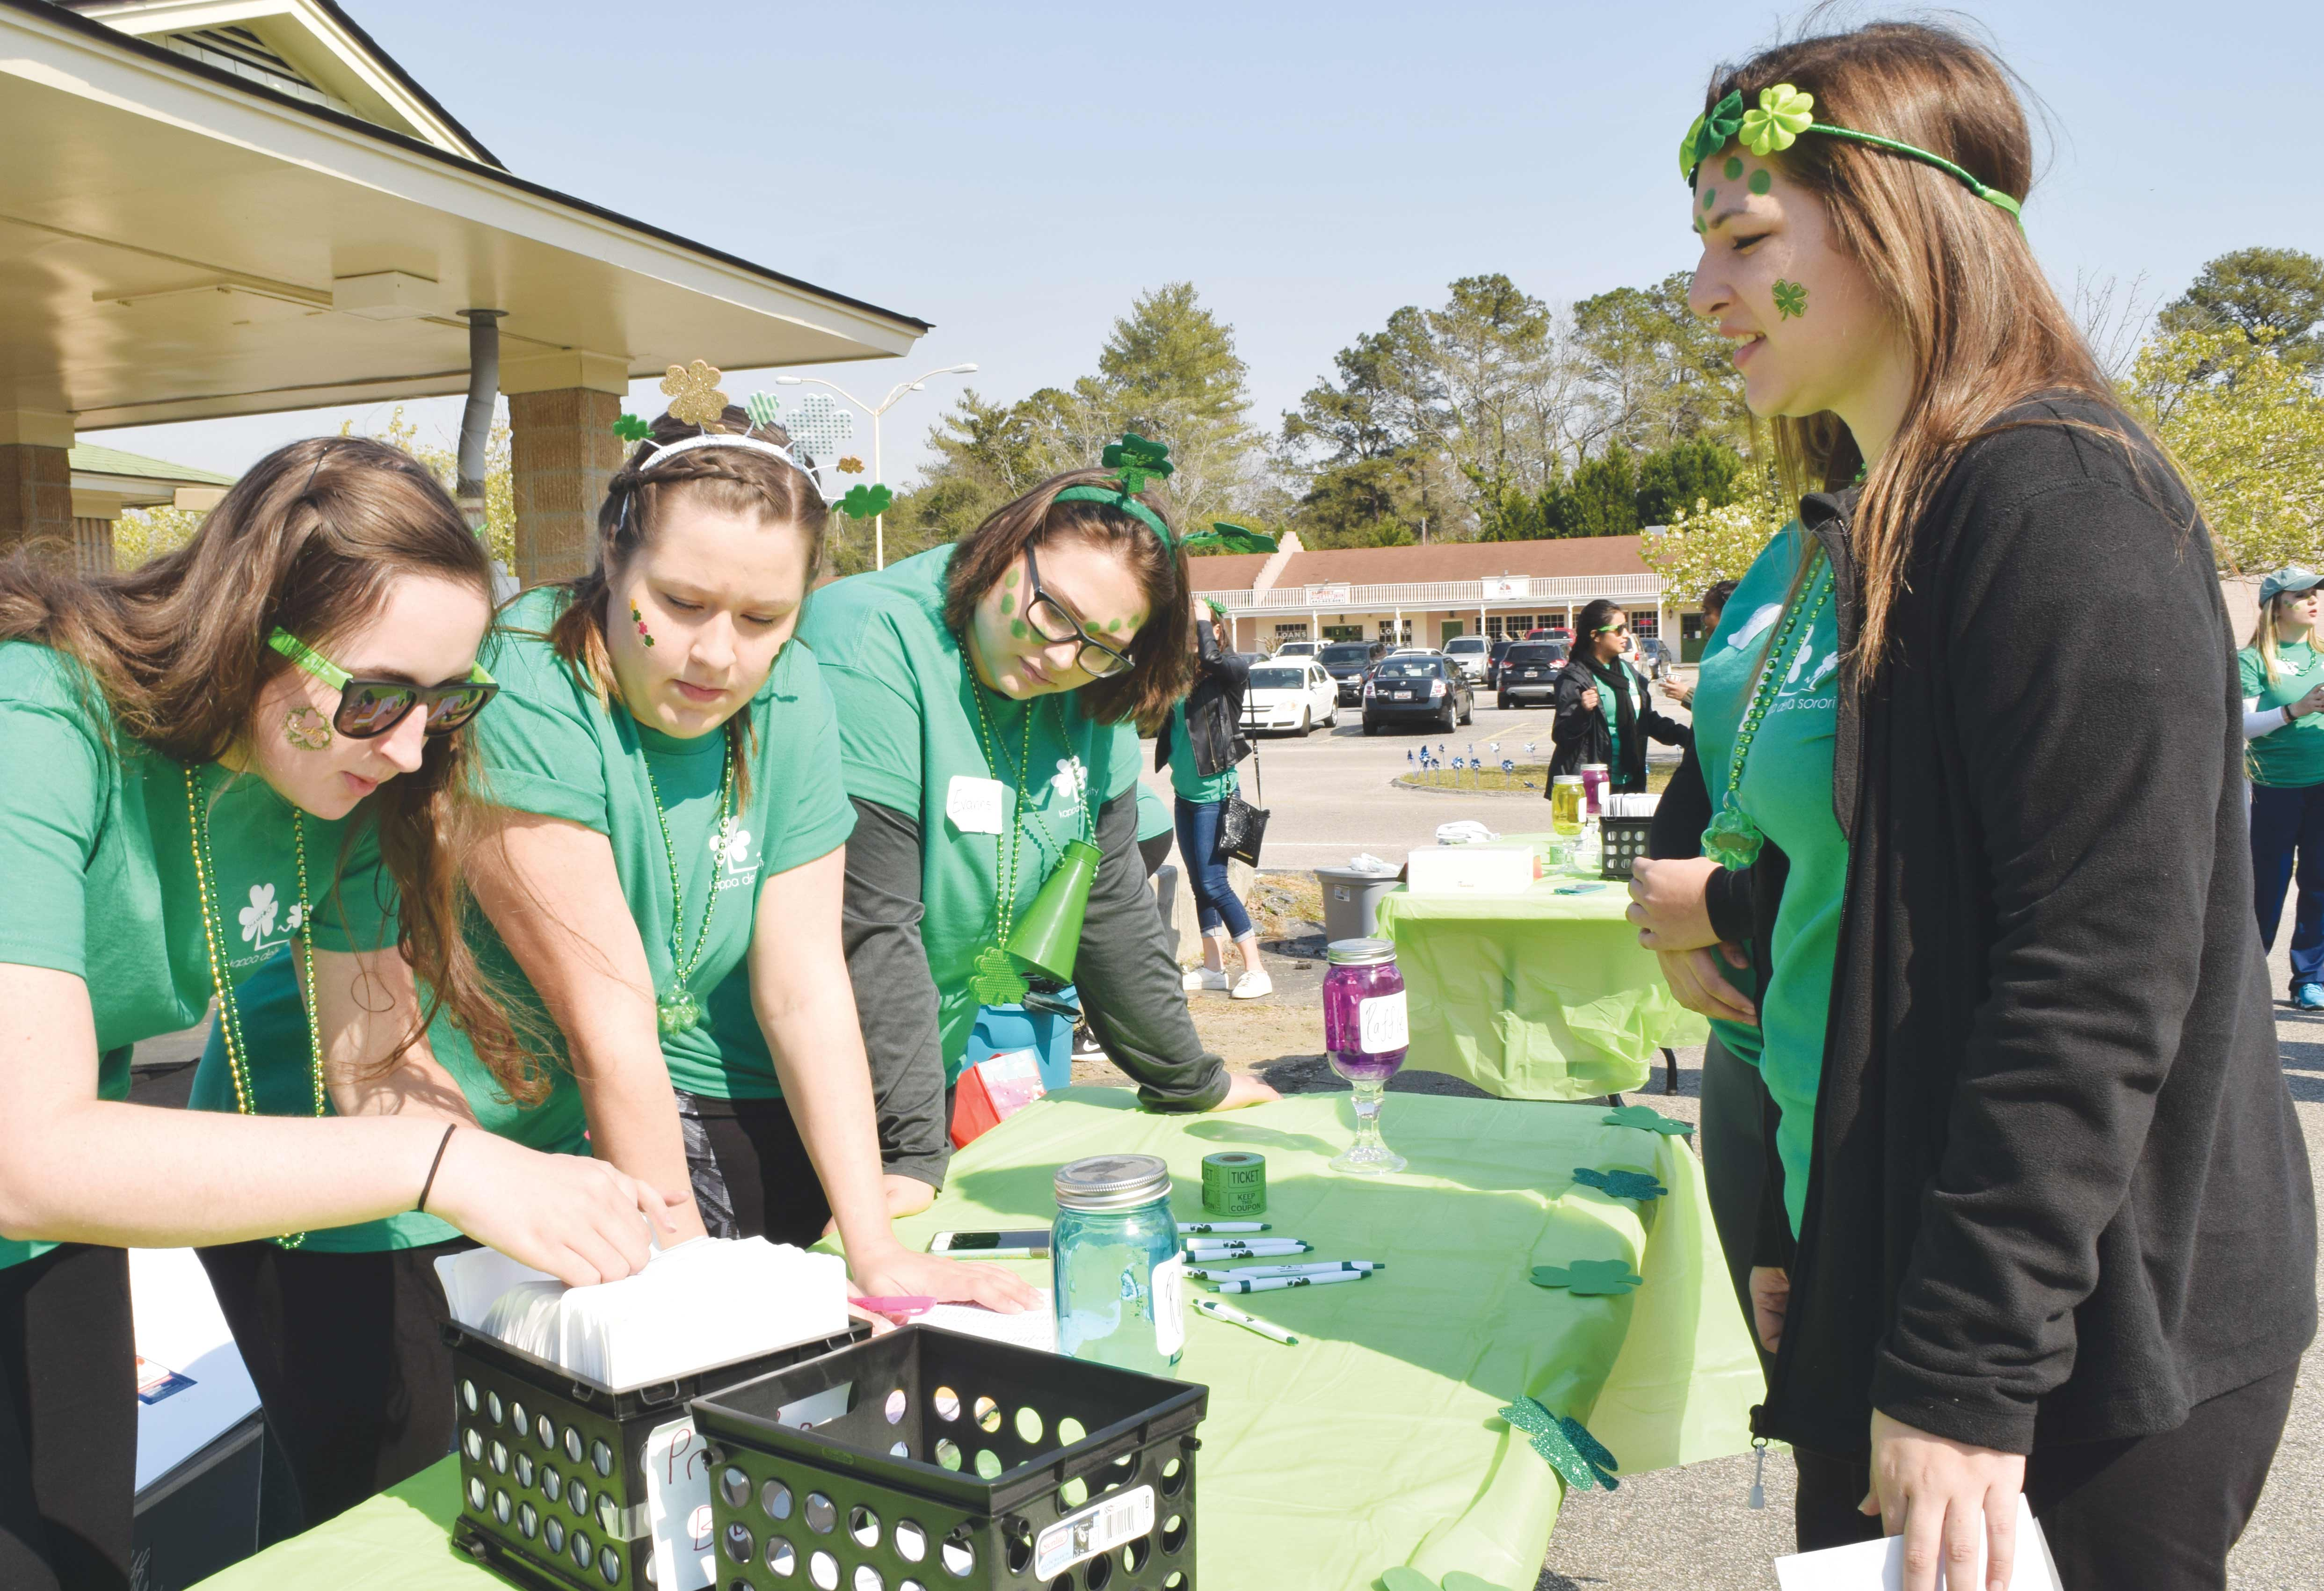 KD members work at the registration booth during the March 4 5K. Proceeds were donated to the Durant Children's Center and National Prevent Child Abuse America.